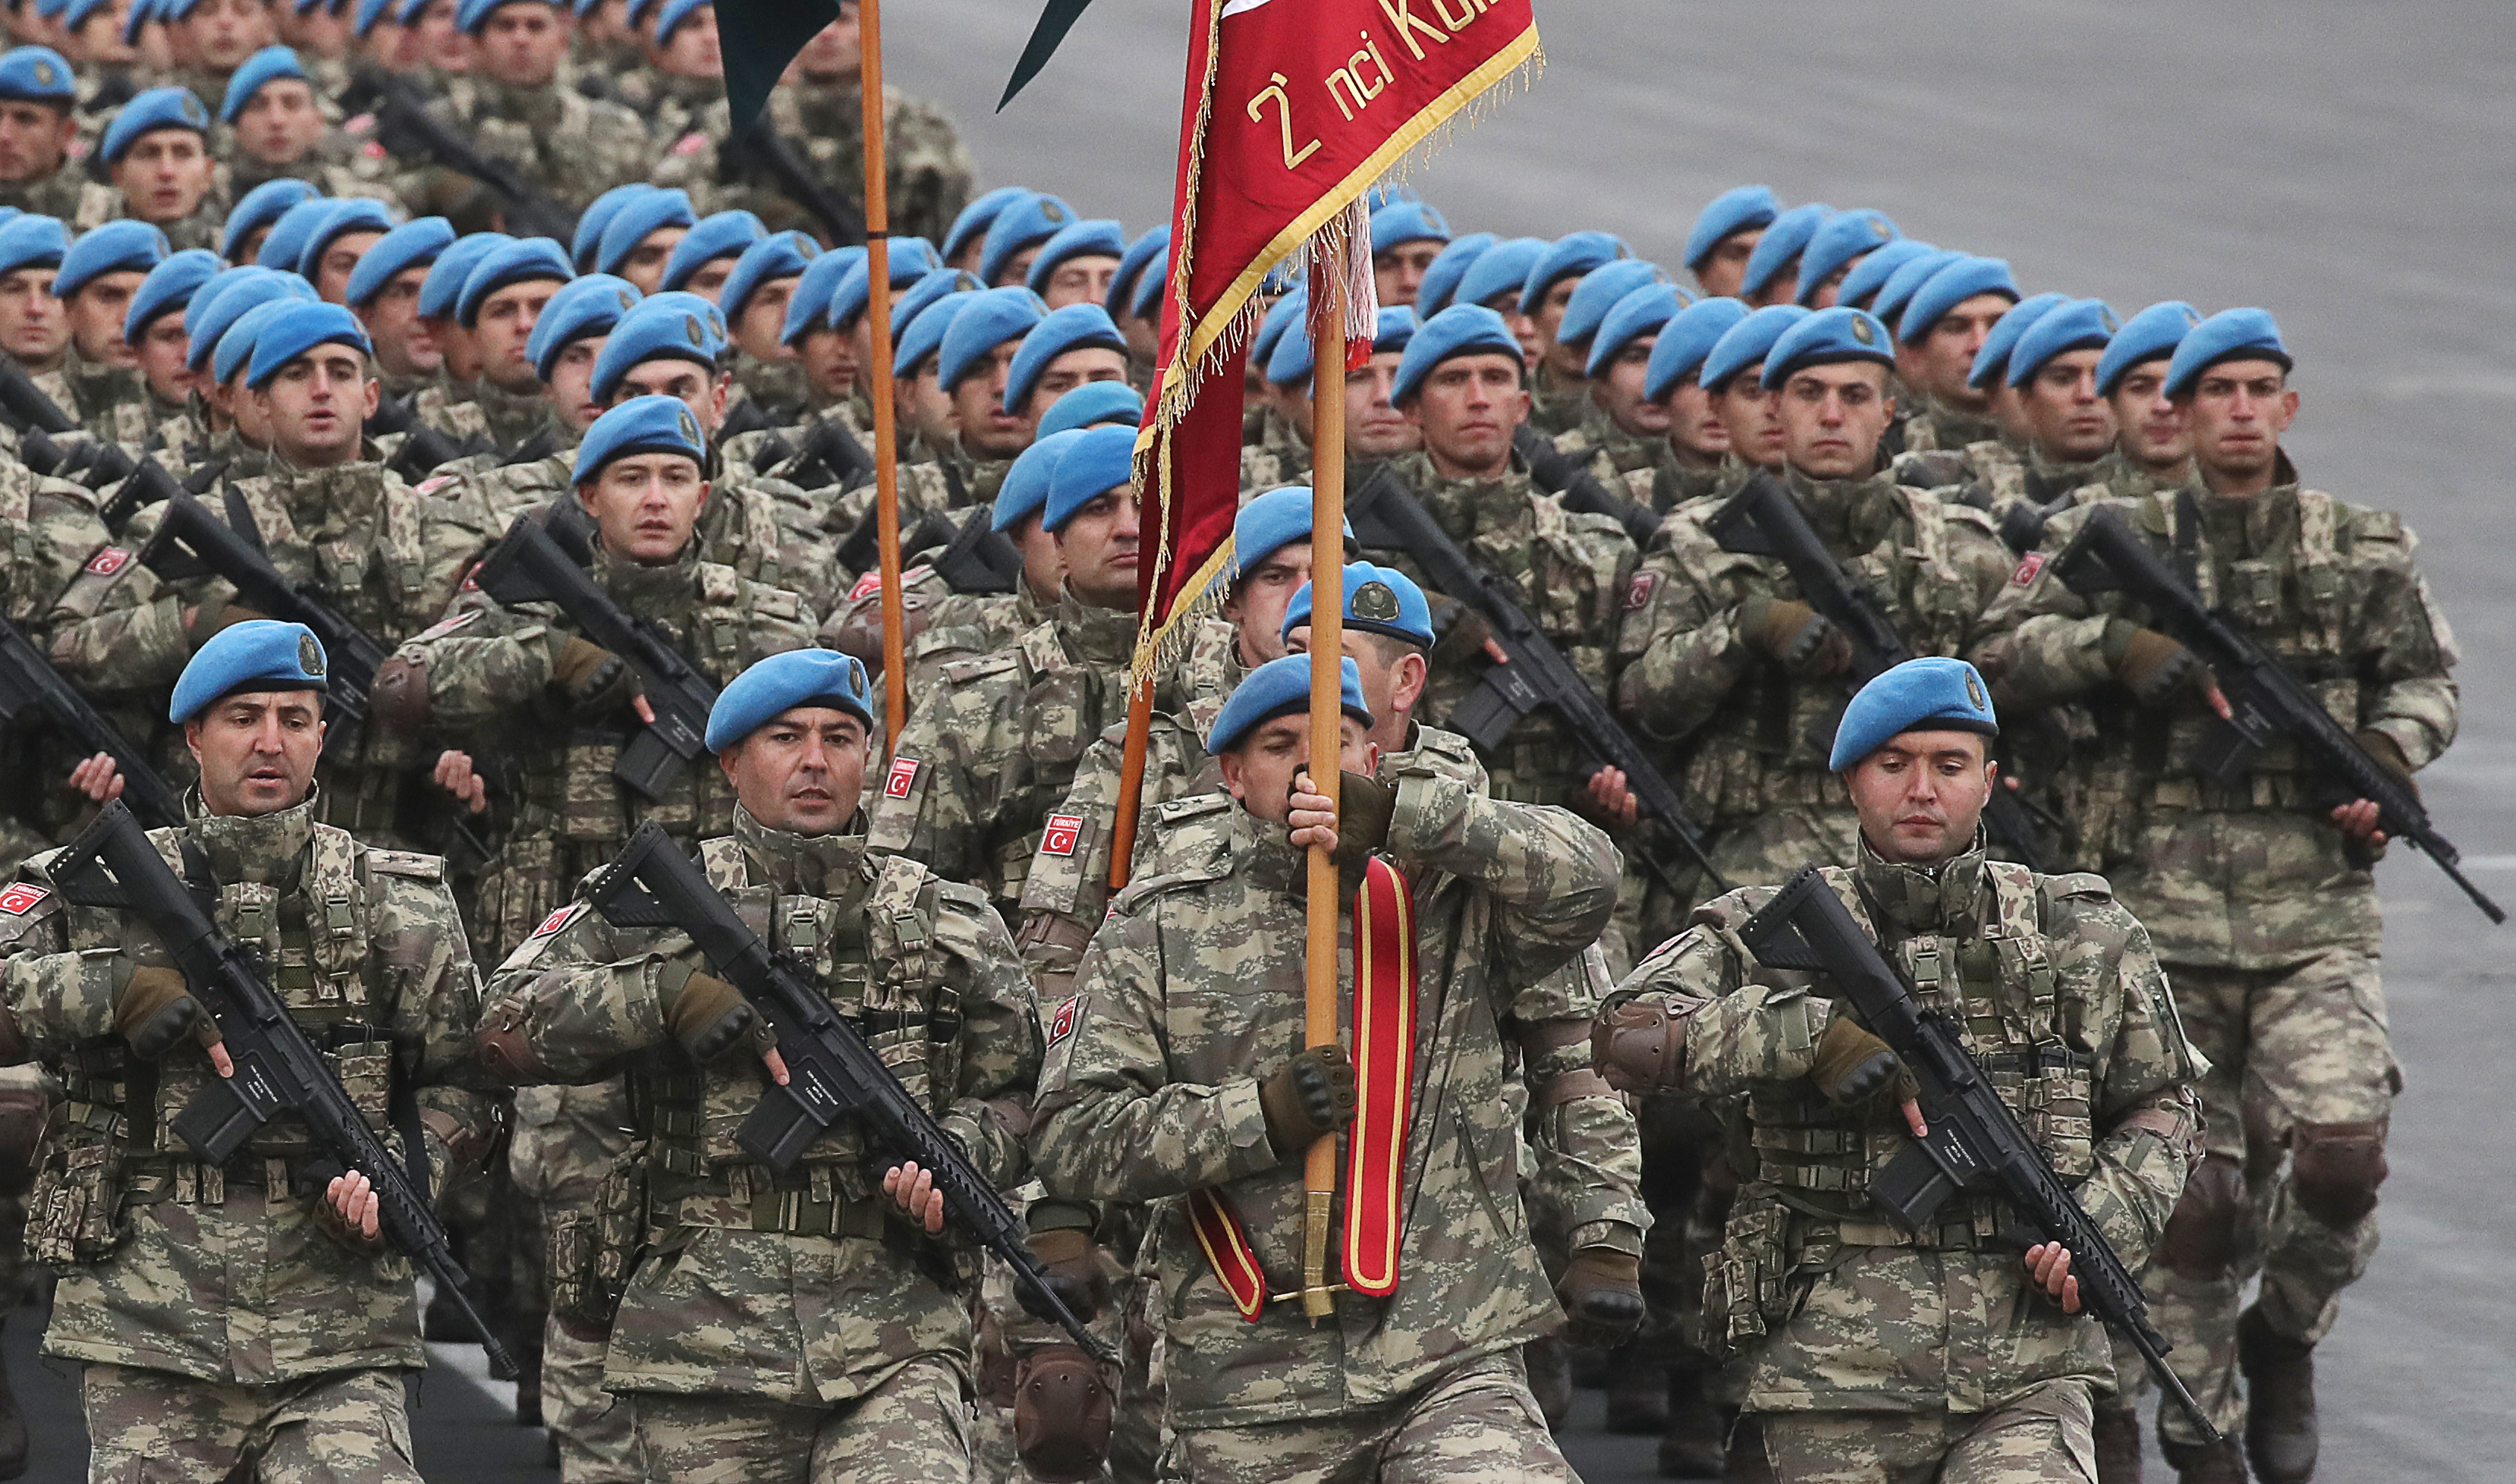 Turkish soldiers march in formation during a military parade marking the end of the Nagorno Karabakh military conflict.